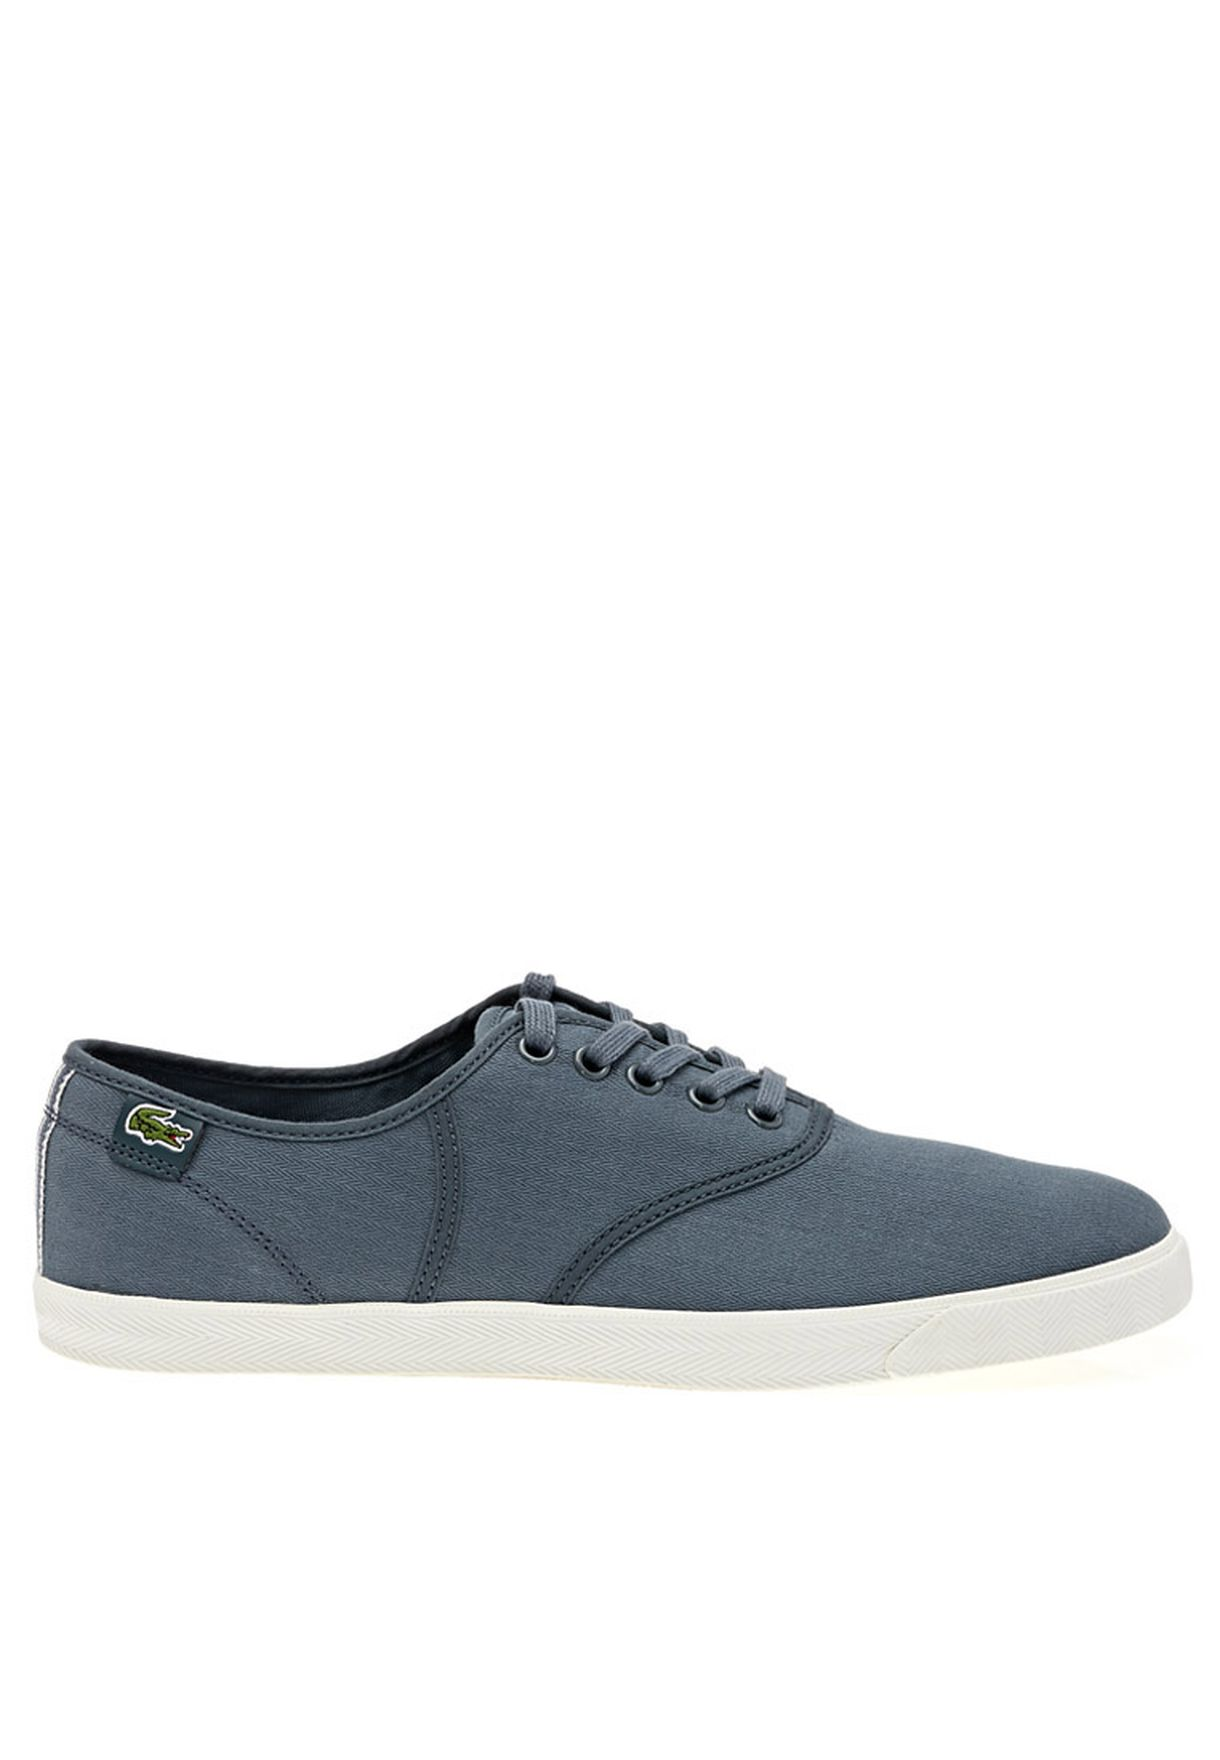 10cc7e9234a9b5 Shop Lacoste grey RENE Low-top Sneakers RENE JULES for Men in Oman ...